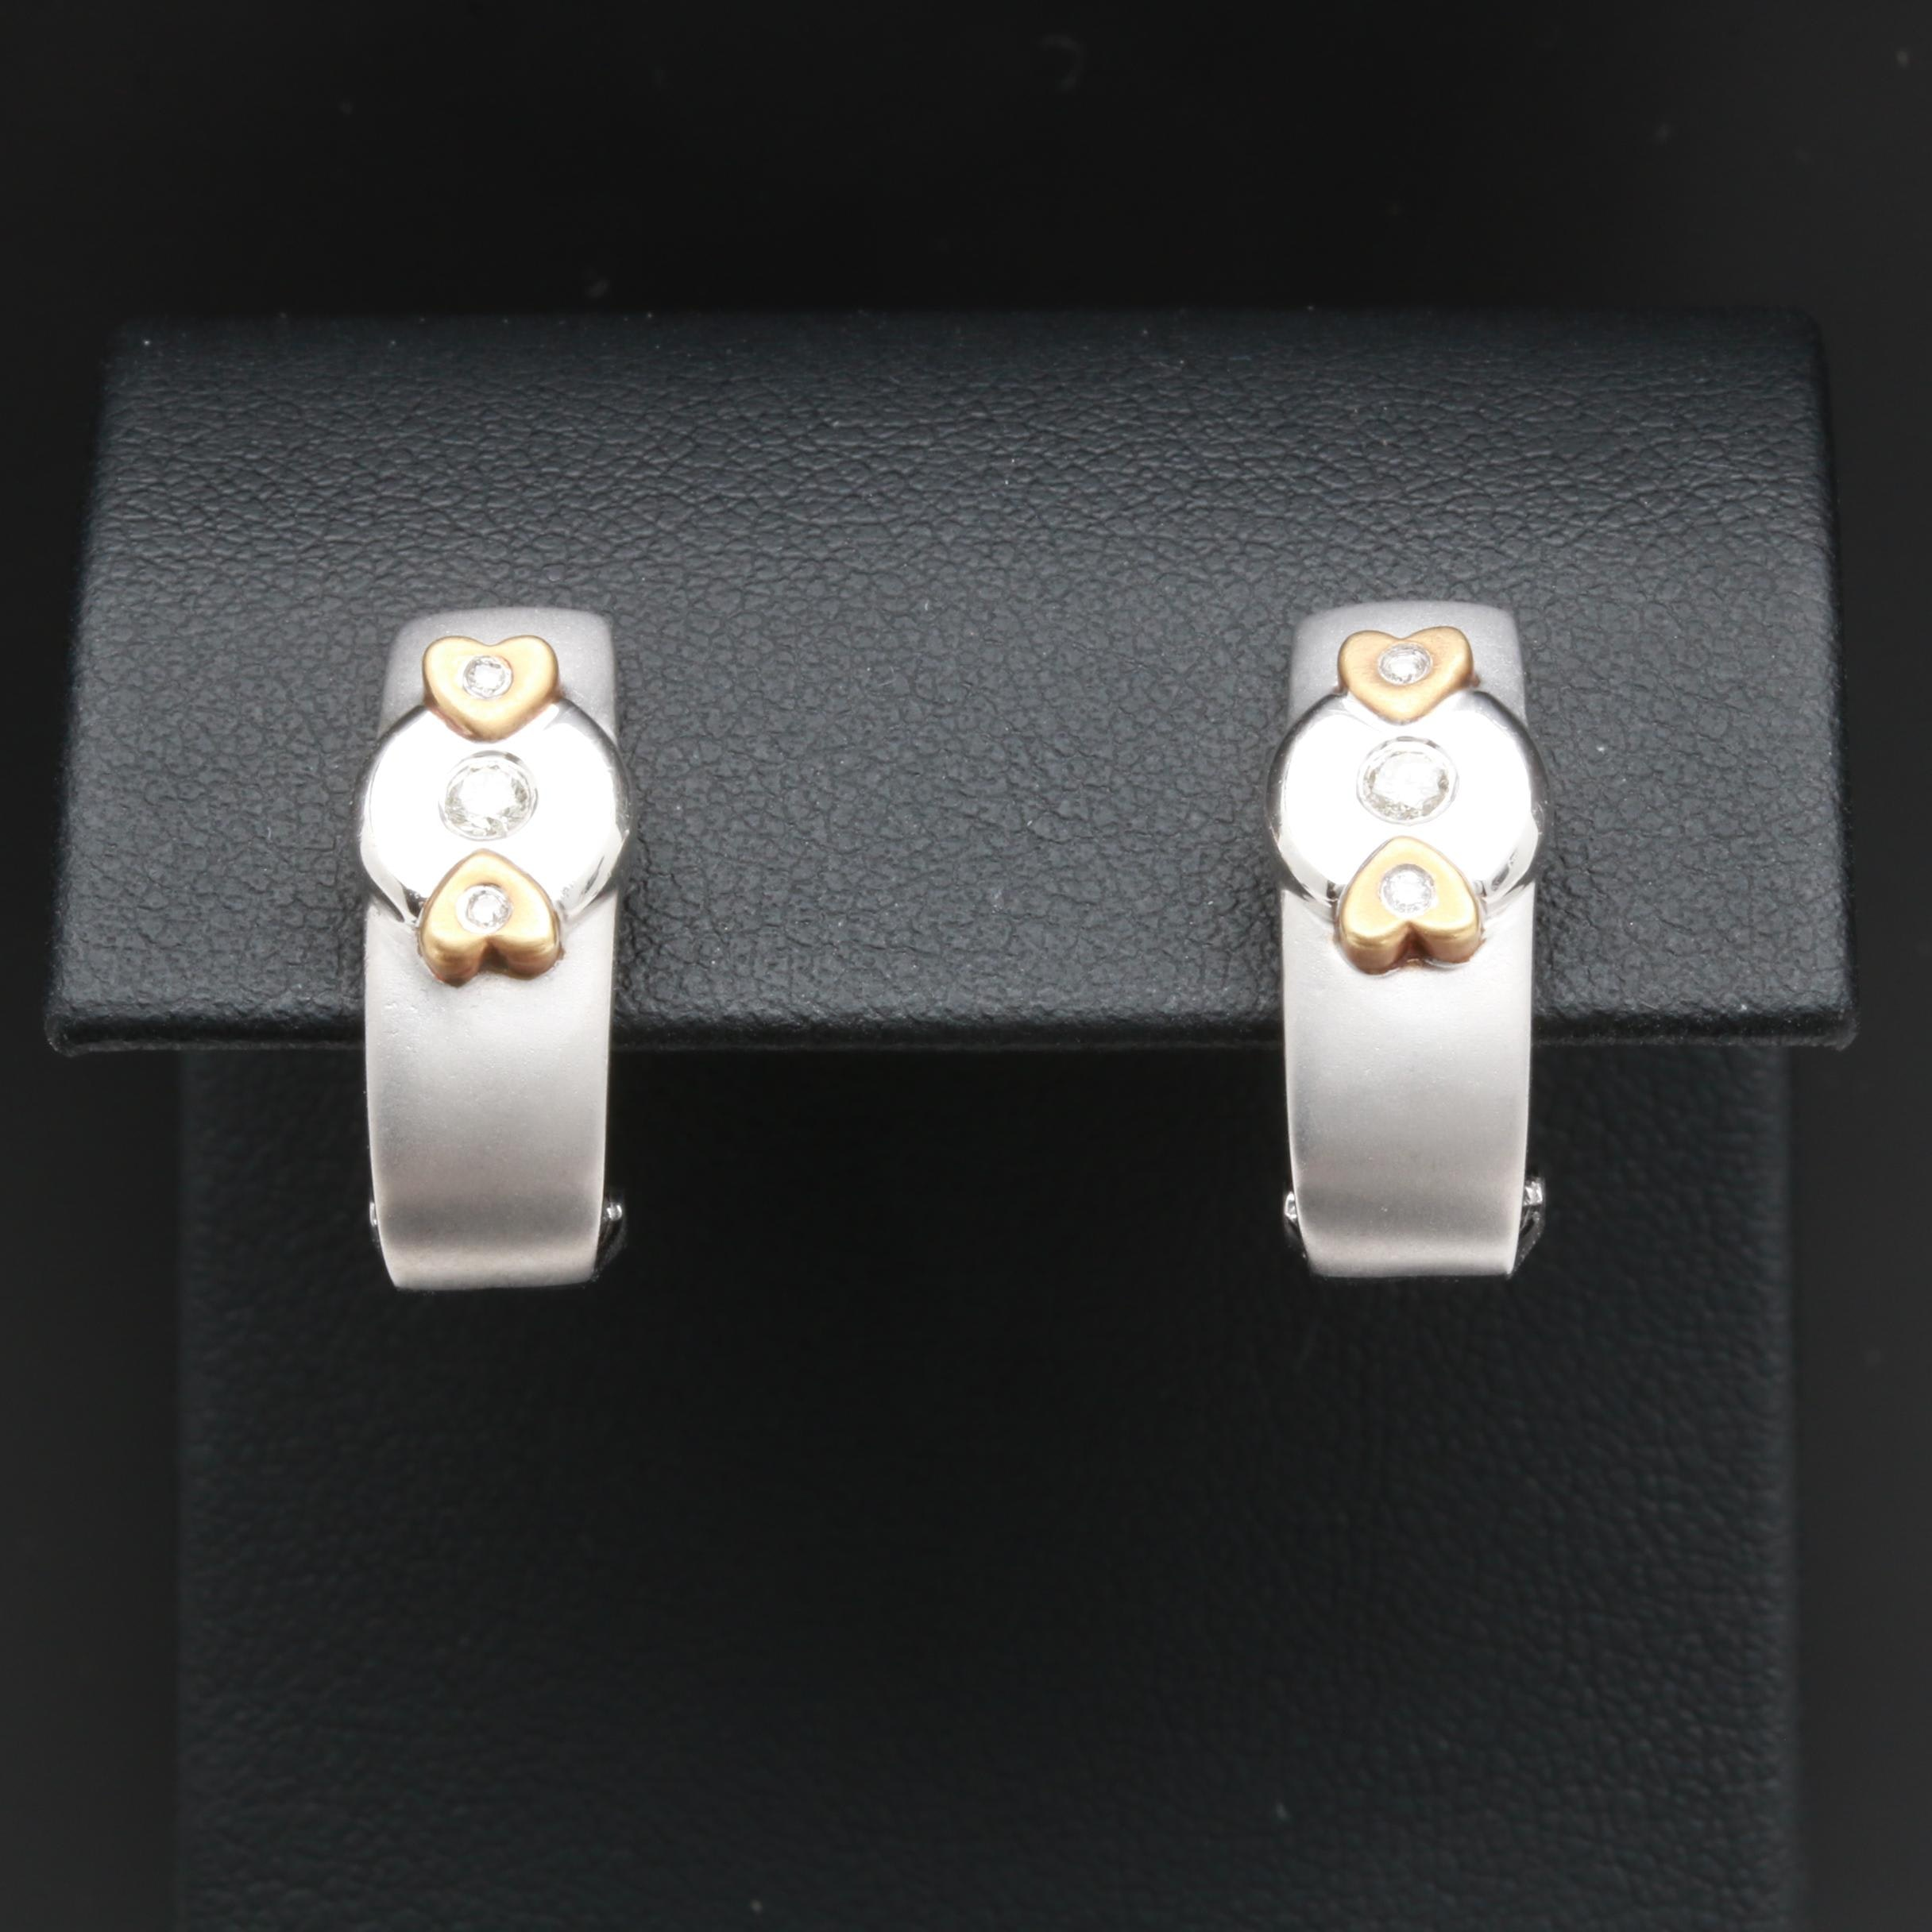 14K White Gold Diamond Earrings with Yellow Gold Accents